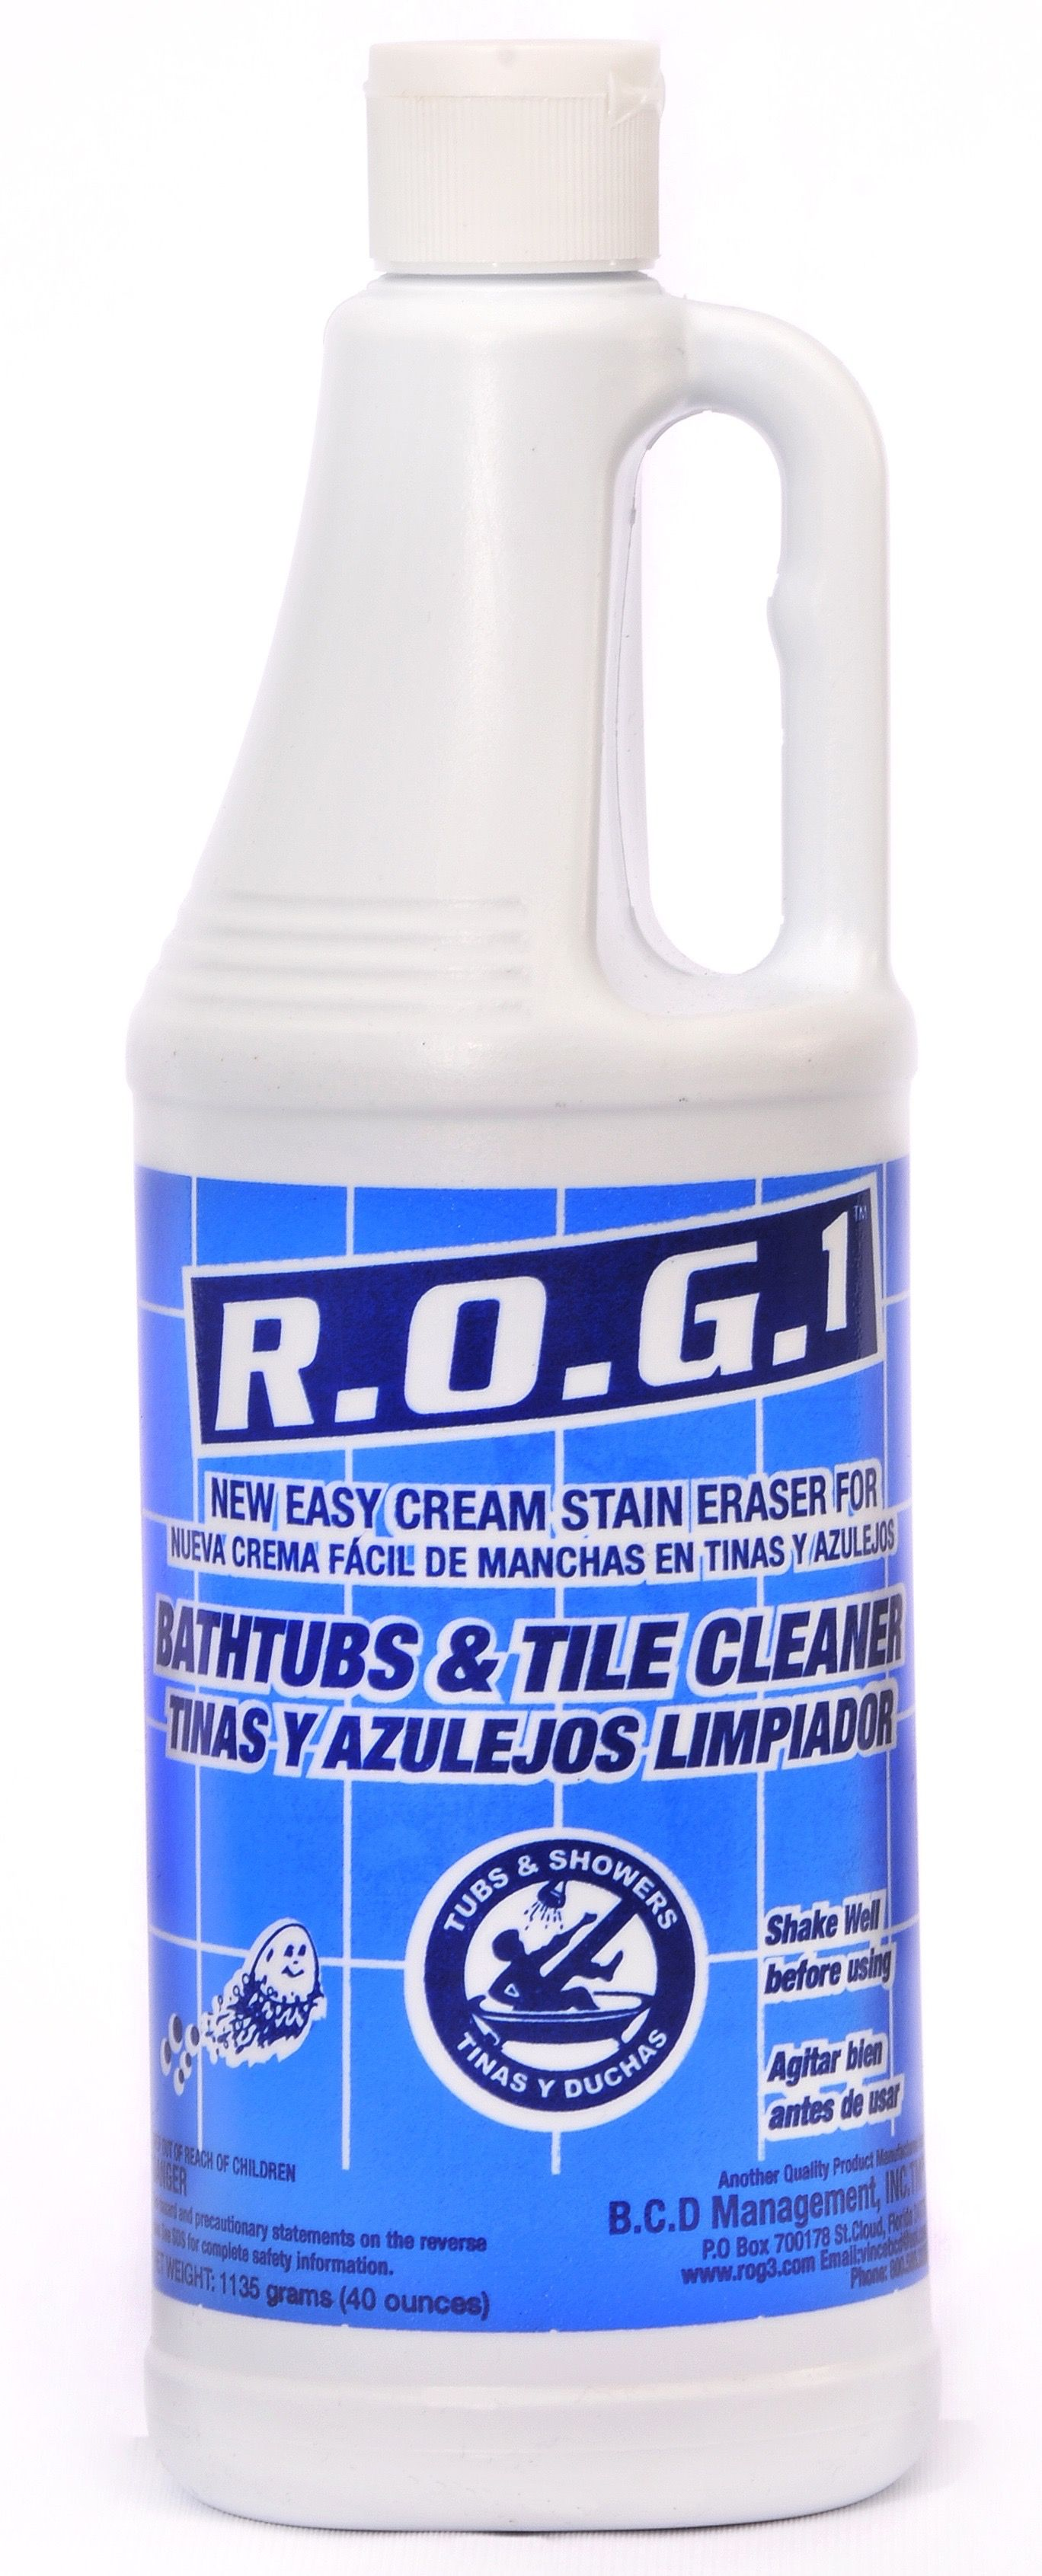 R0G1 cream cleaner for tough stains in Bathtub bottoms especially ...